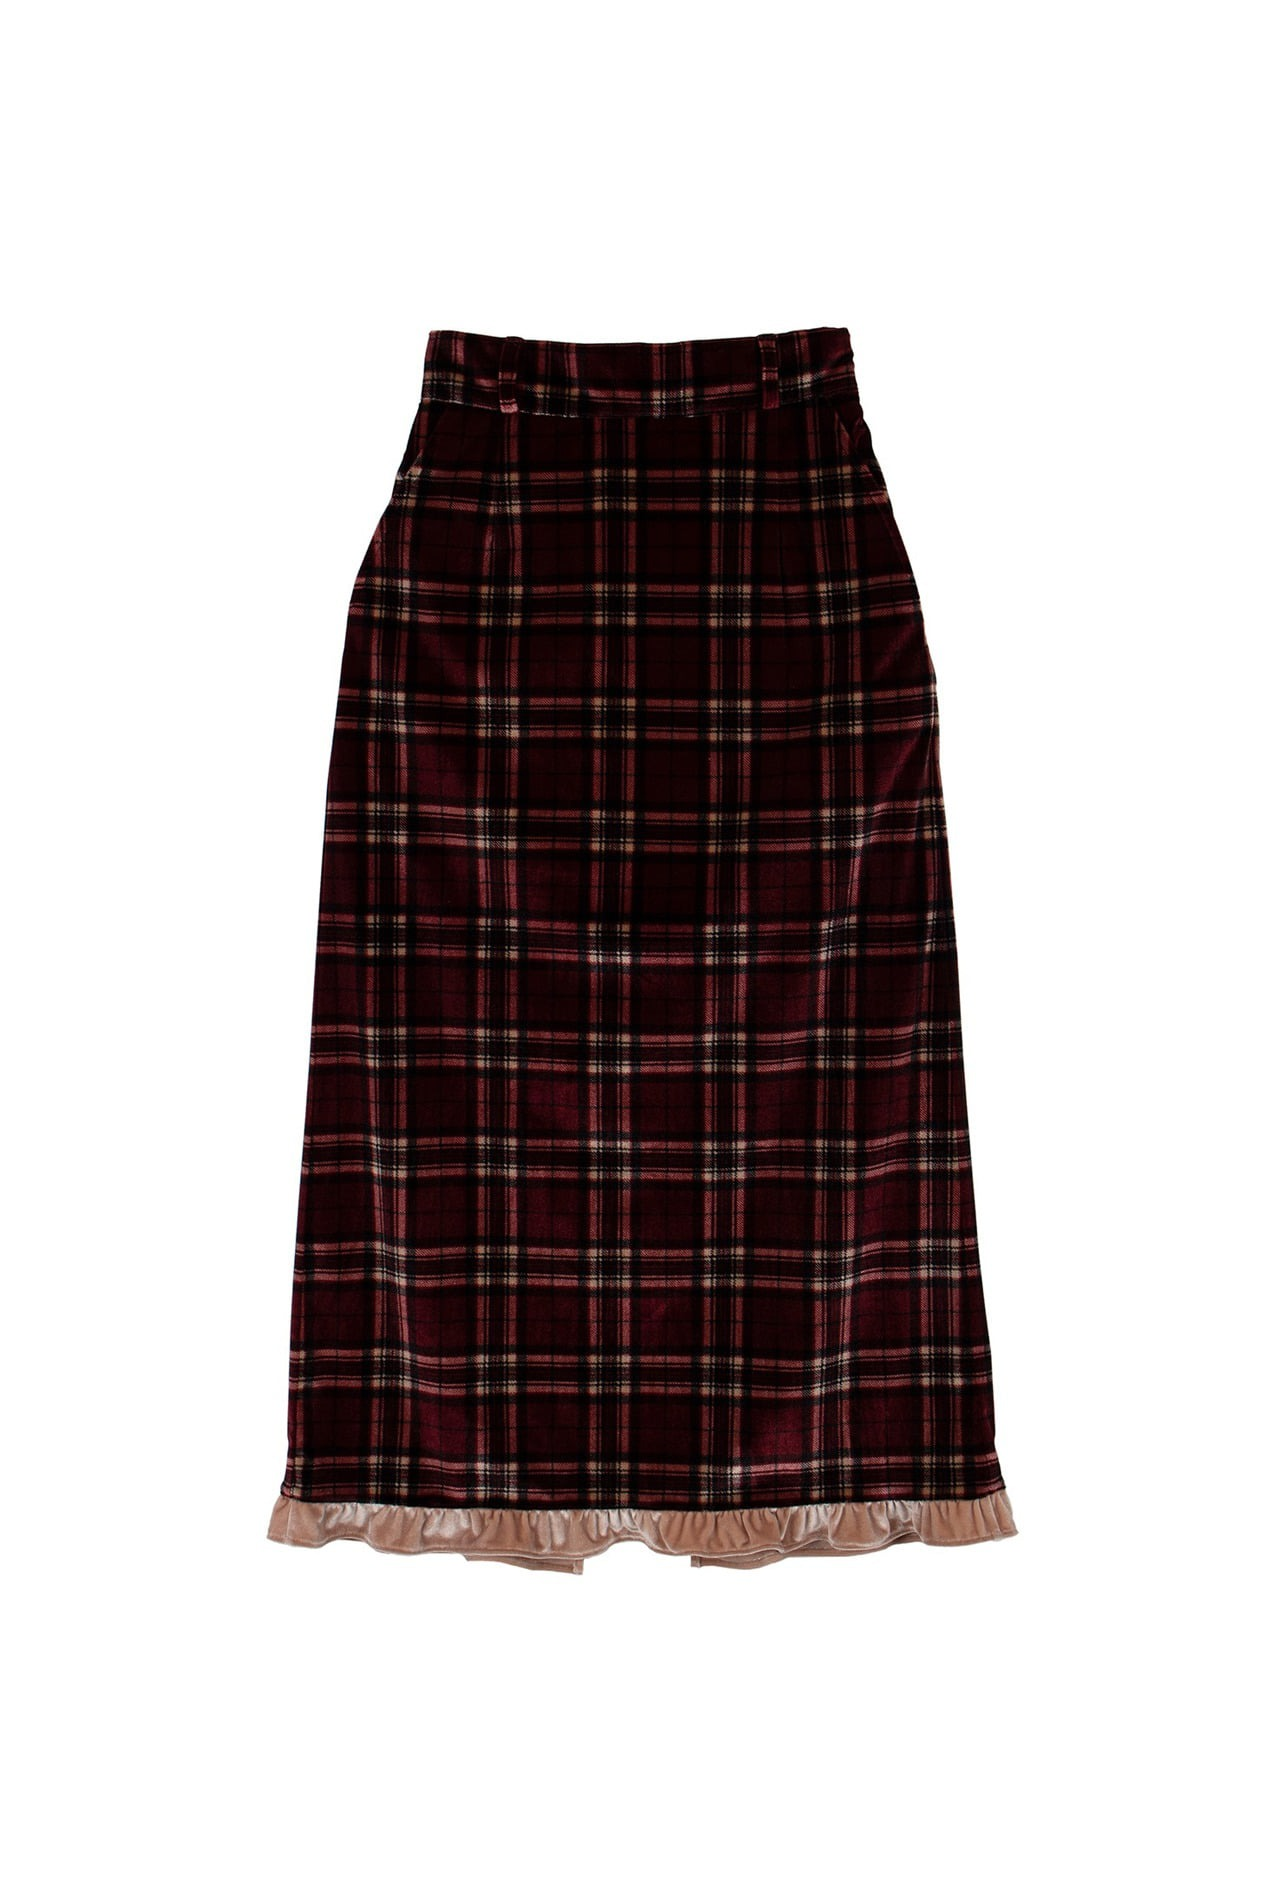 Carboncheck long skirt